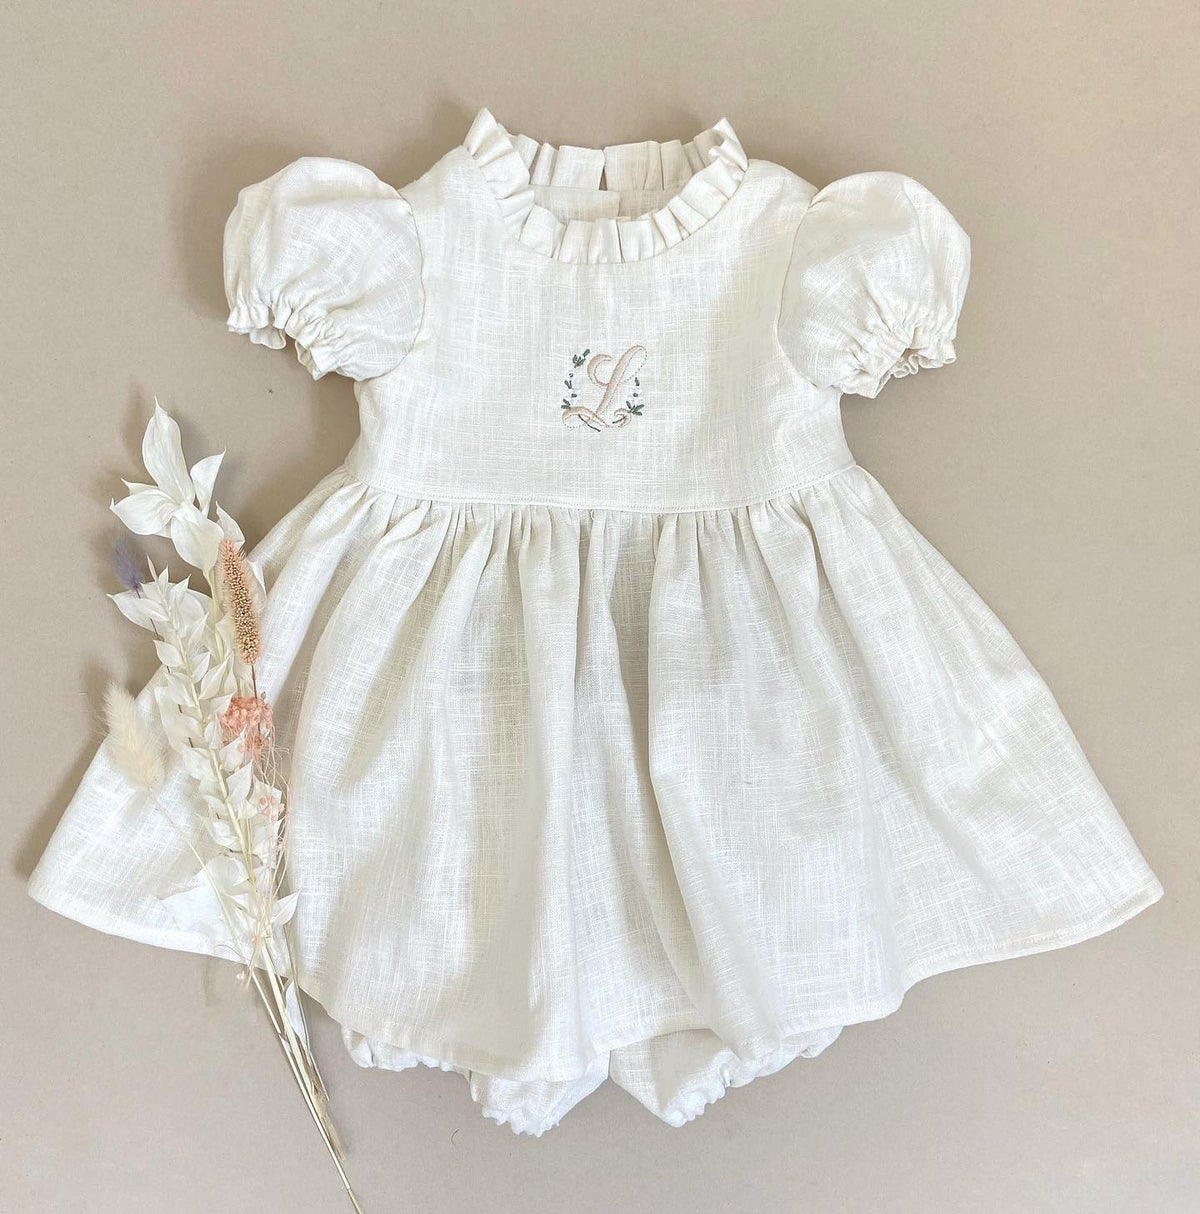 Initial embroidered ruffle neck dress in Ivory linen